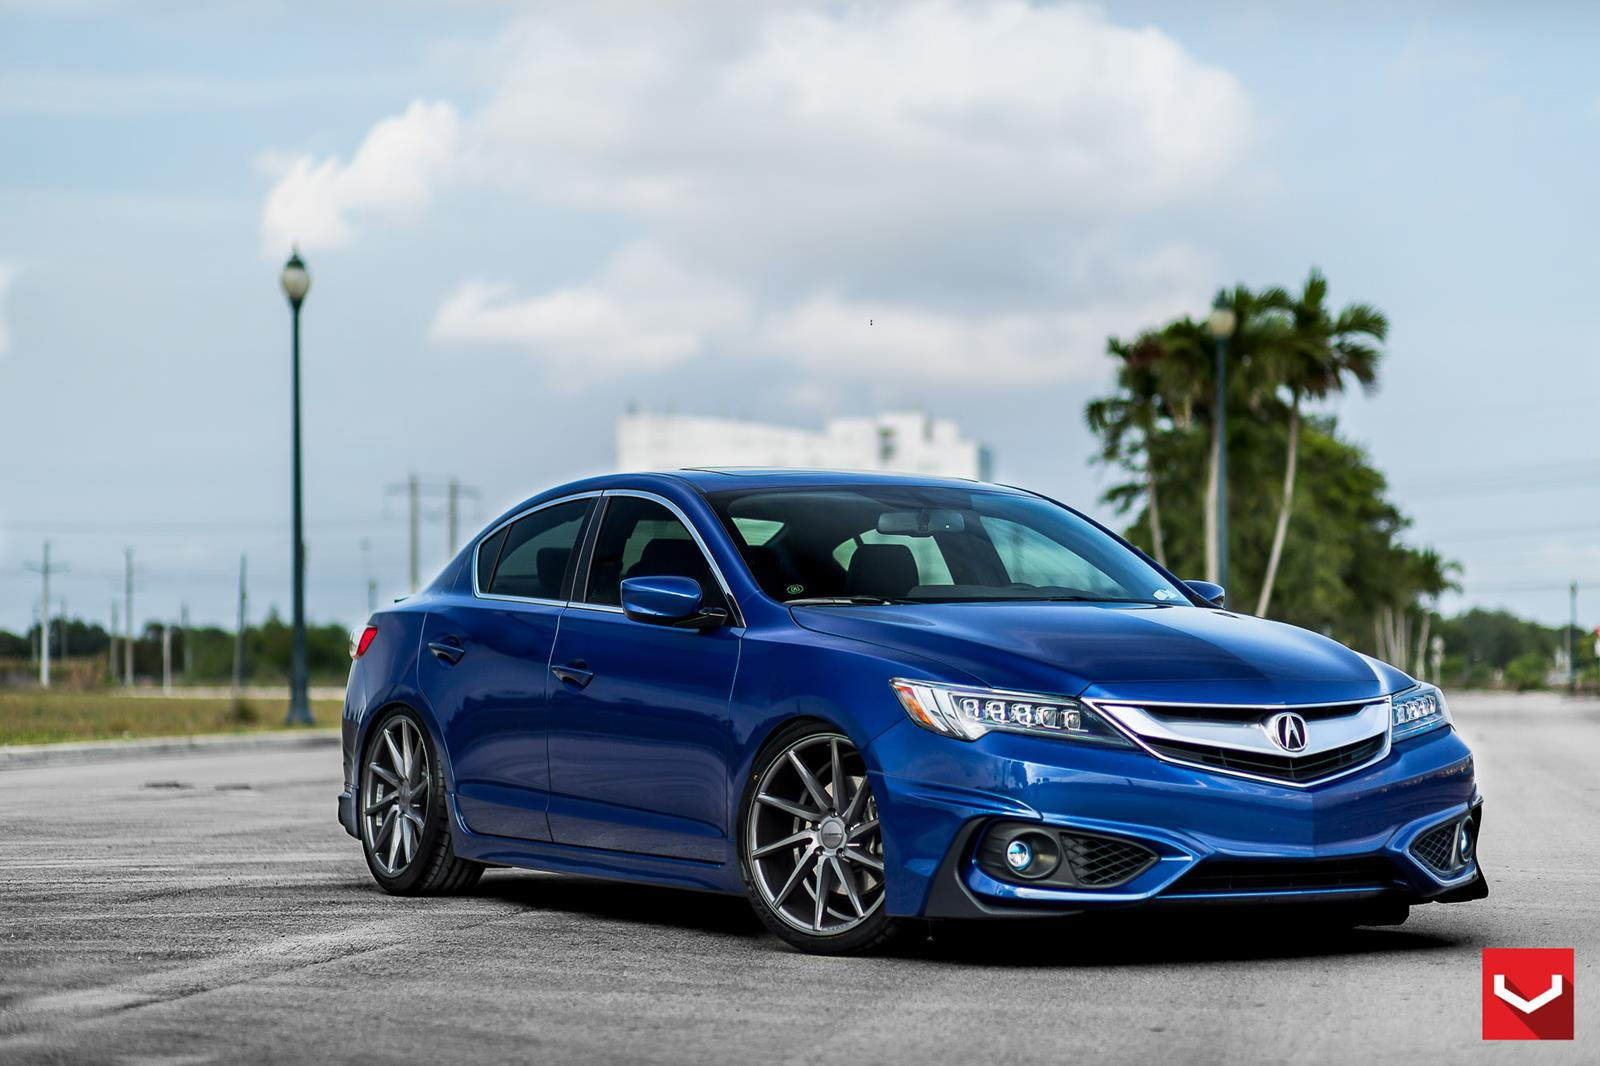 Replacing Wheels And Lowering Car Acurazine Acura